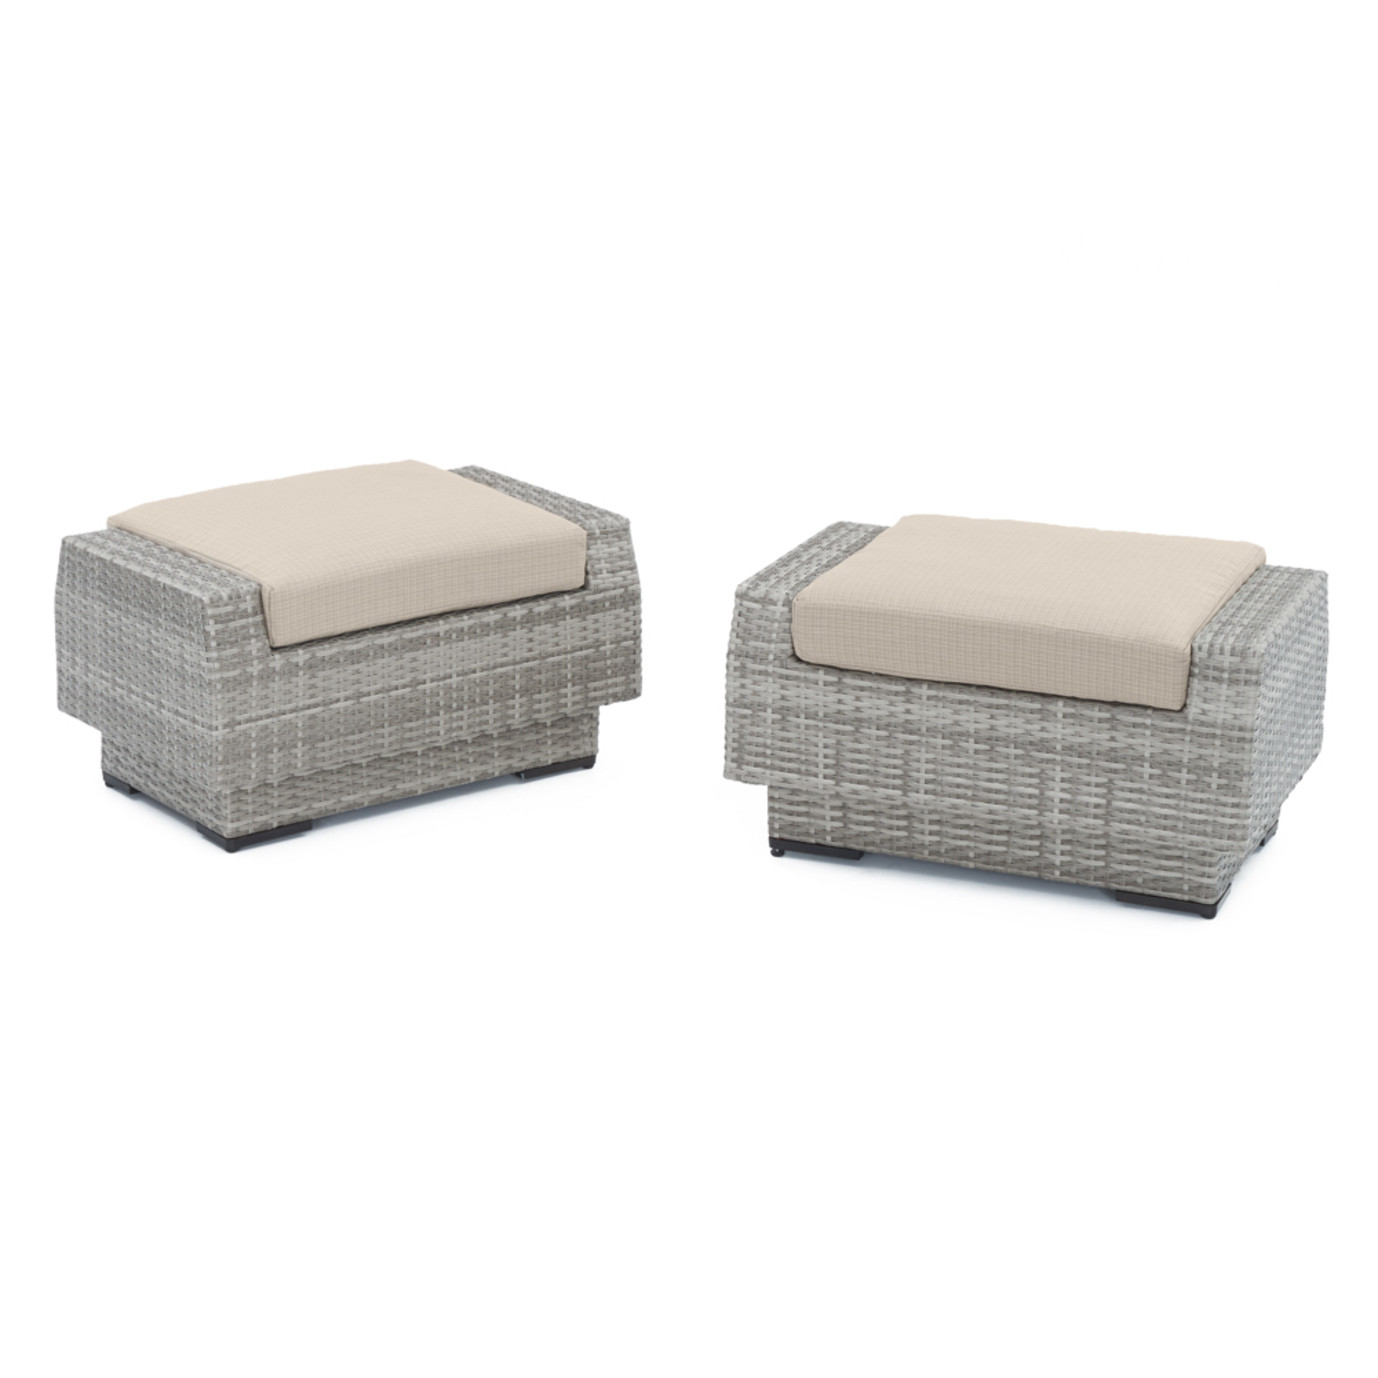 Cannes™ Club Ottomans - Slate Grey